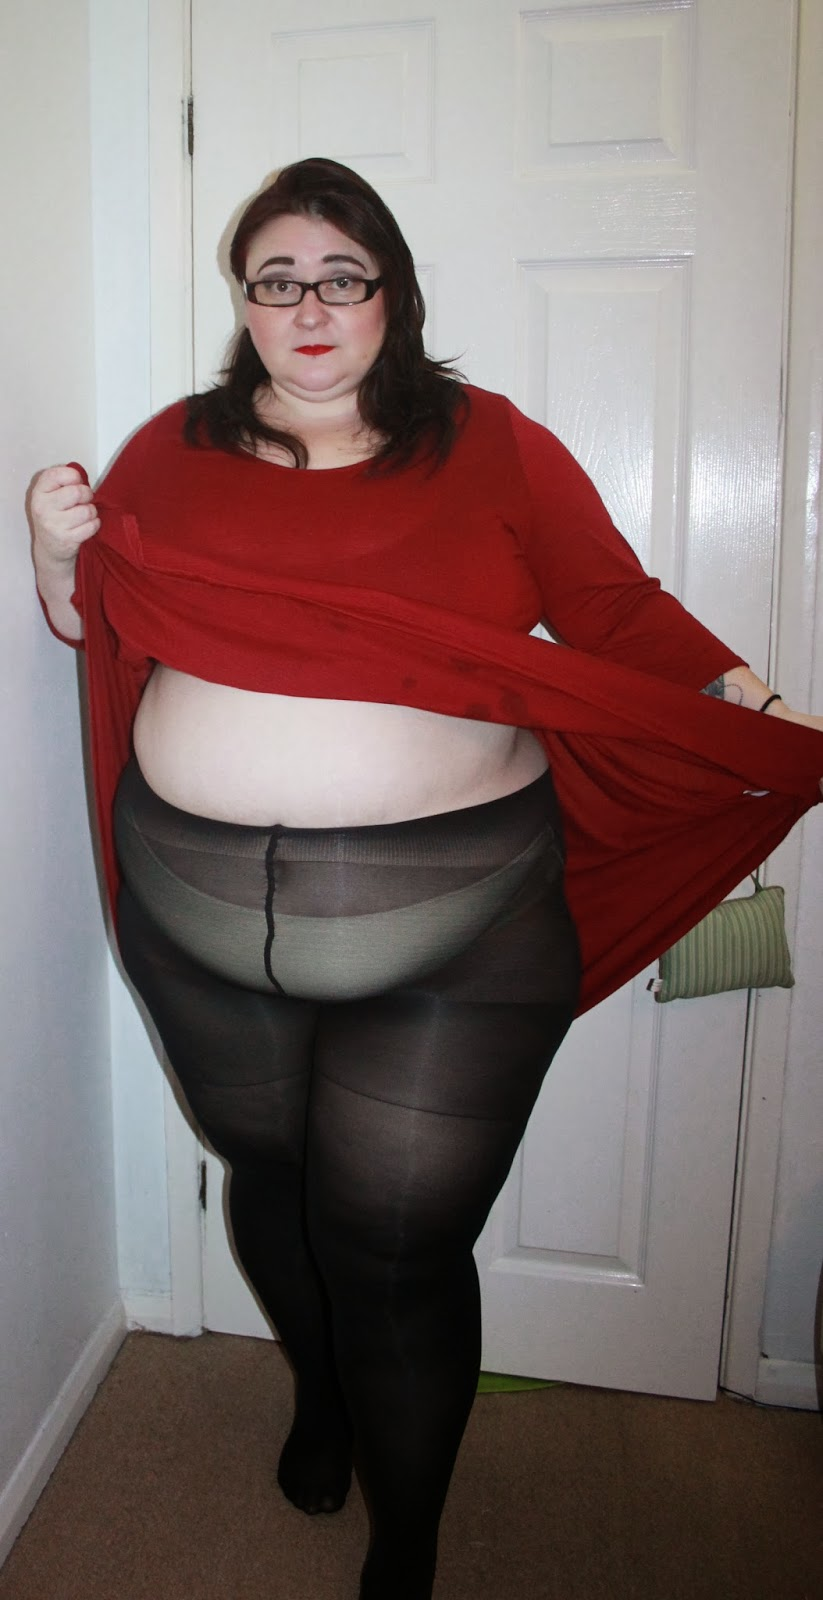 Bbw In Tights 74